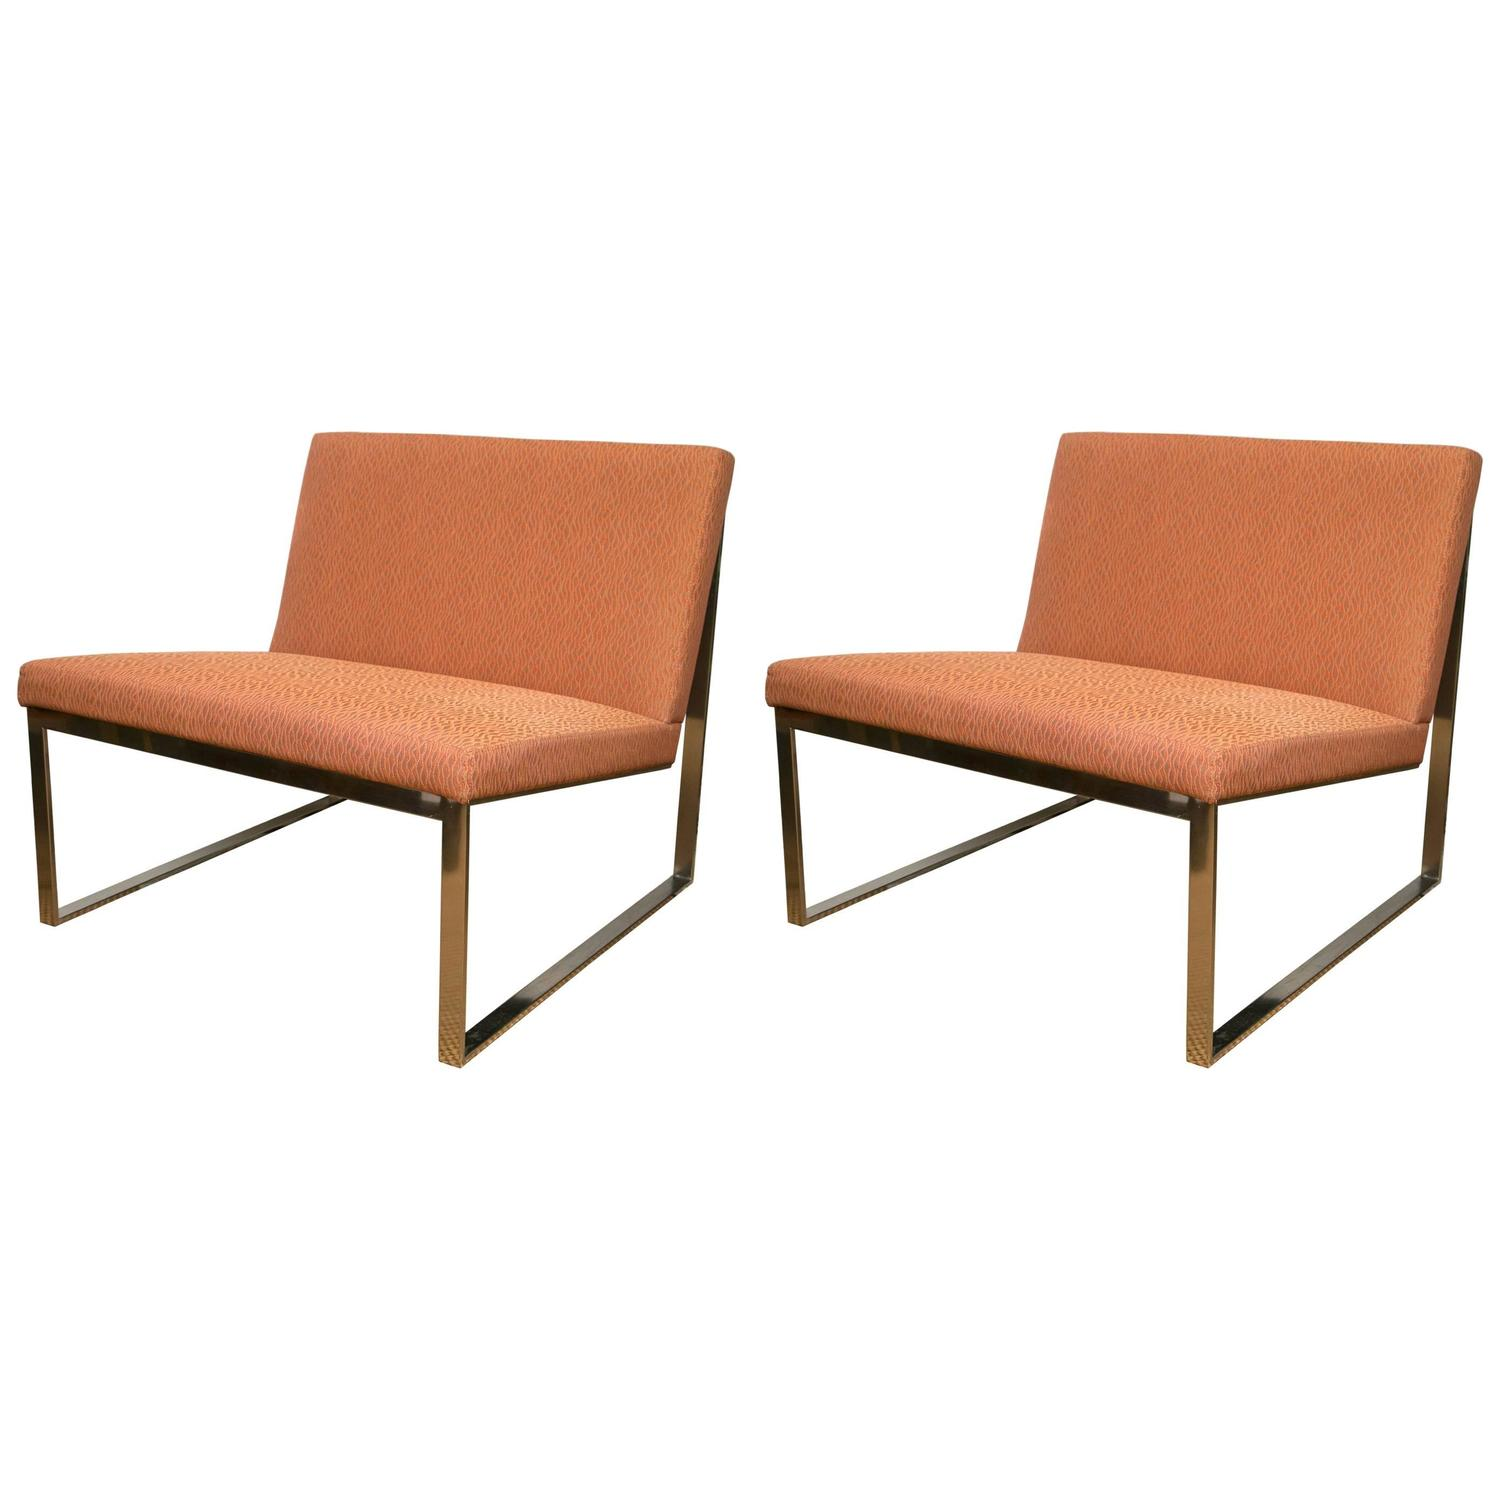 Beau Vintage Strada Side Chair By Bernhardt Design For Sale At 1stdibs